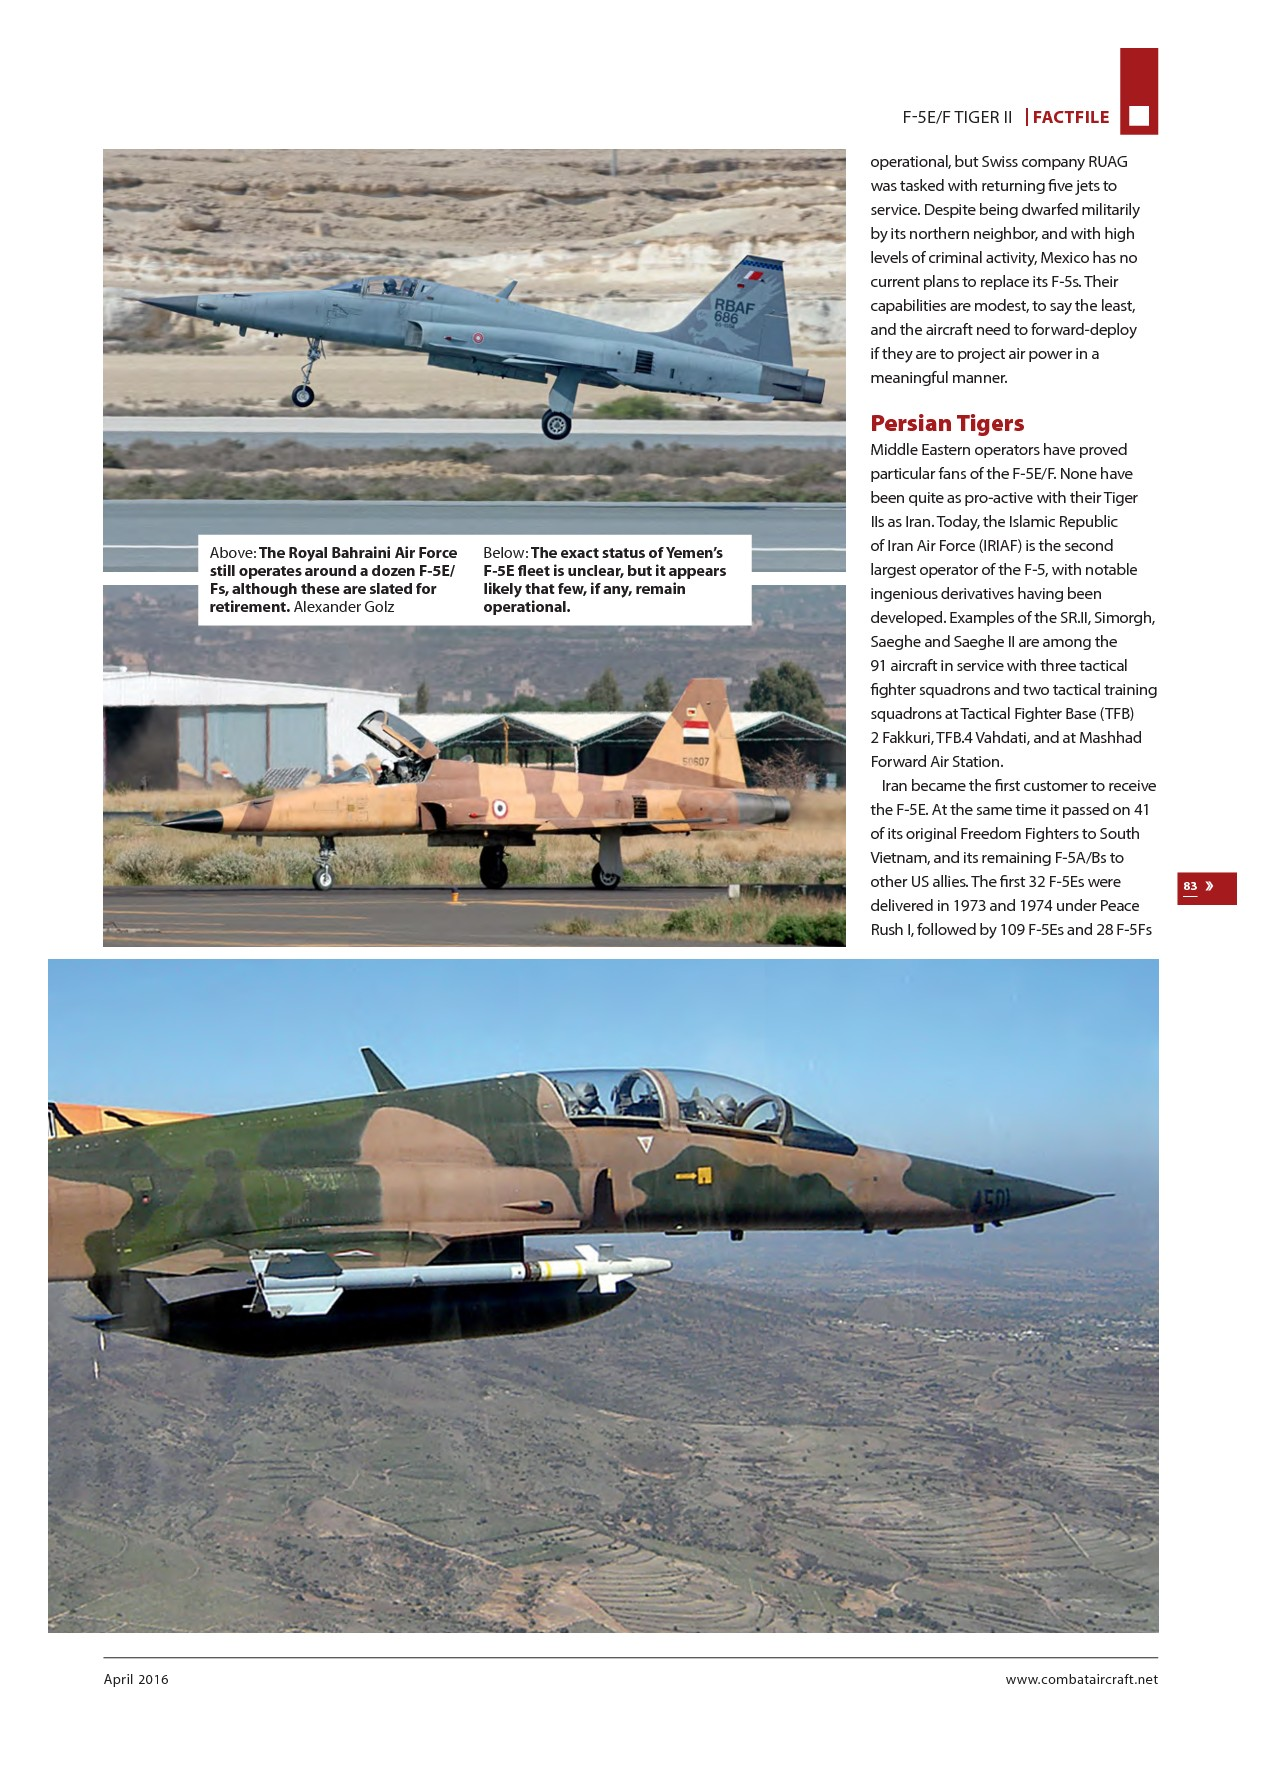 0494_combat_aircraft___april_2016_downmagaz.com_083_001_vdw8.jpg